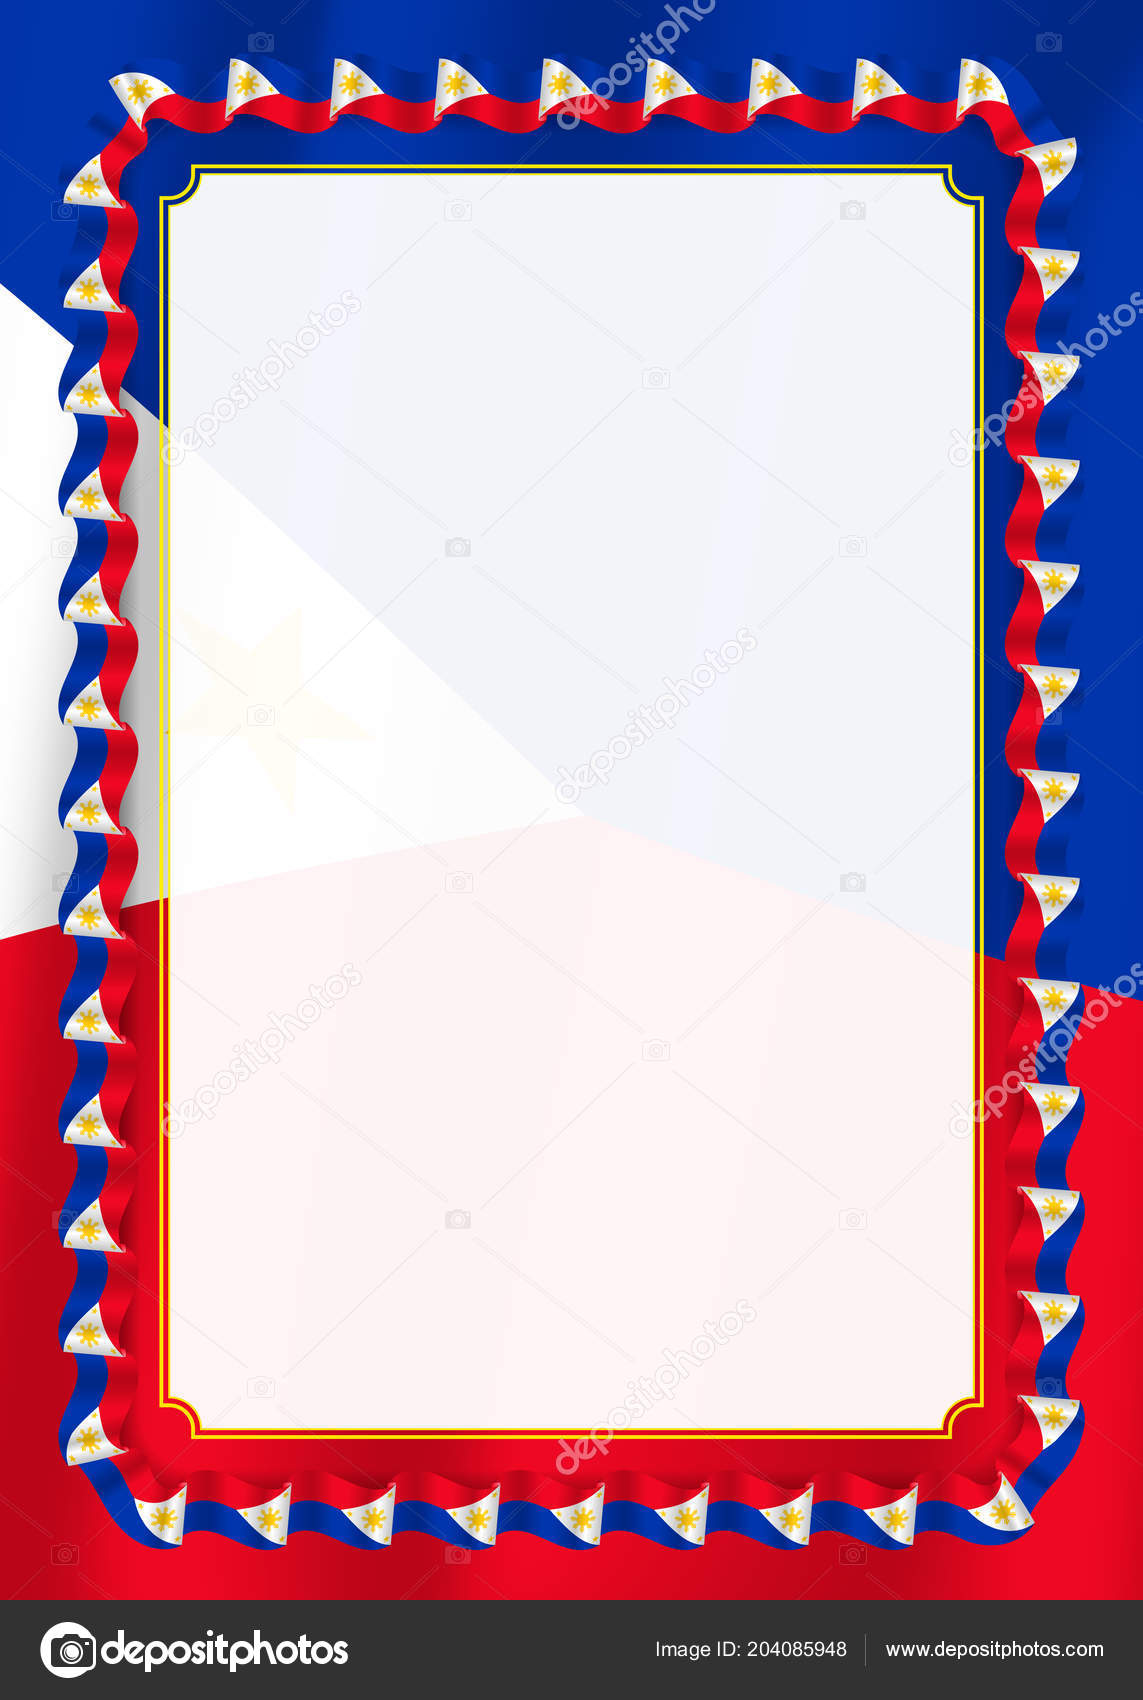 frame border ribbon philippines flag template elements your